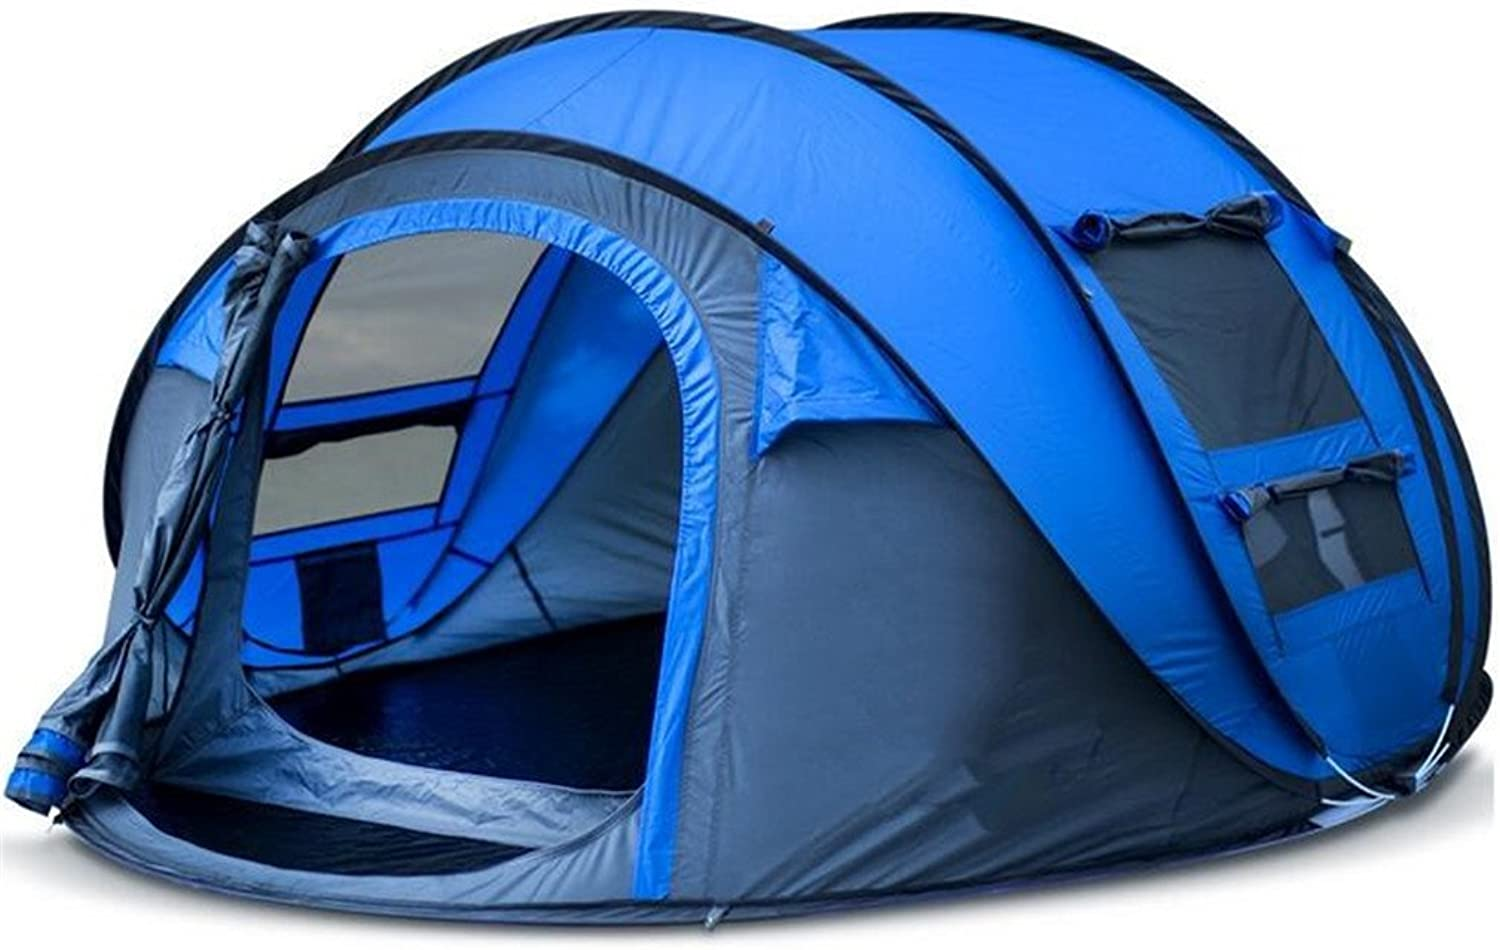 LUCKY-U Campingzelt, Durable Double-Layer Waterproof & Windproof Zelt, Portable Faltendes Faltendes Faltendes Zelt Im Freien Für 3-4 Personen B07DMC42TX  Wir haben von unseren Kunden Lob erhalten. 1aee4e